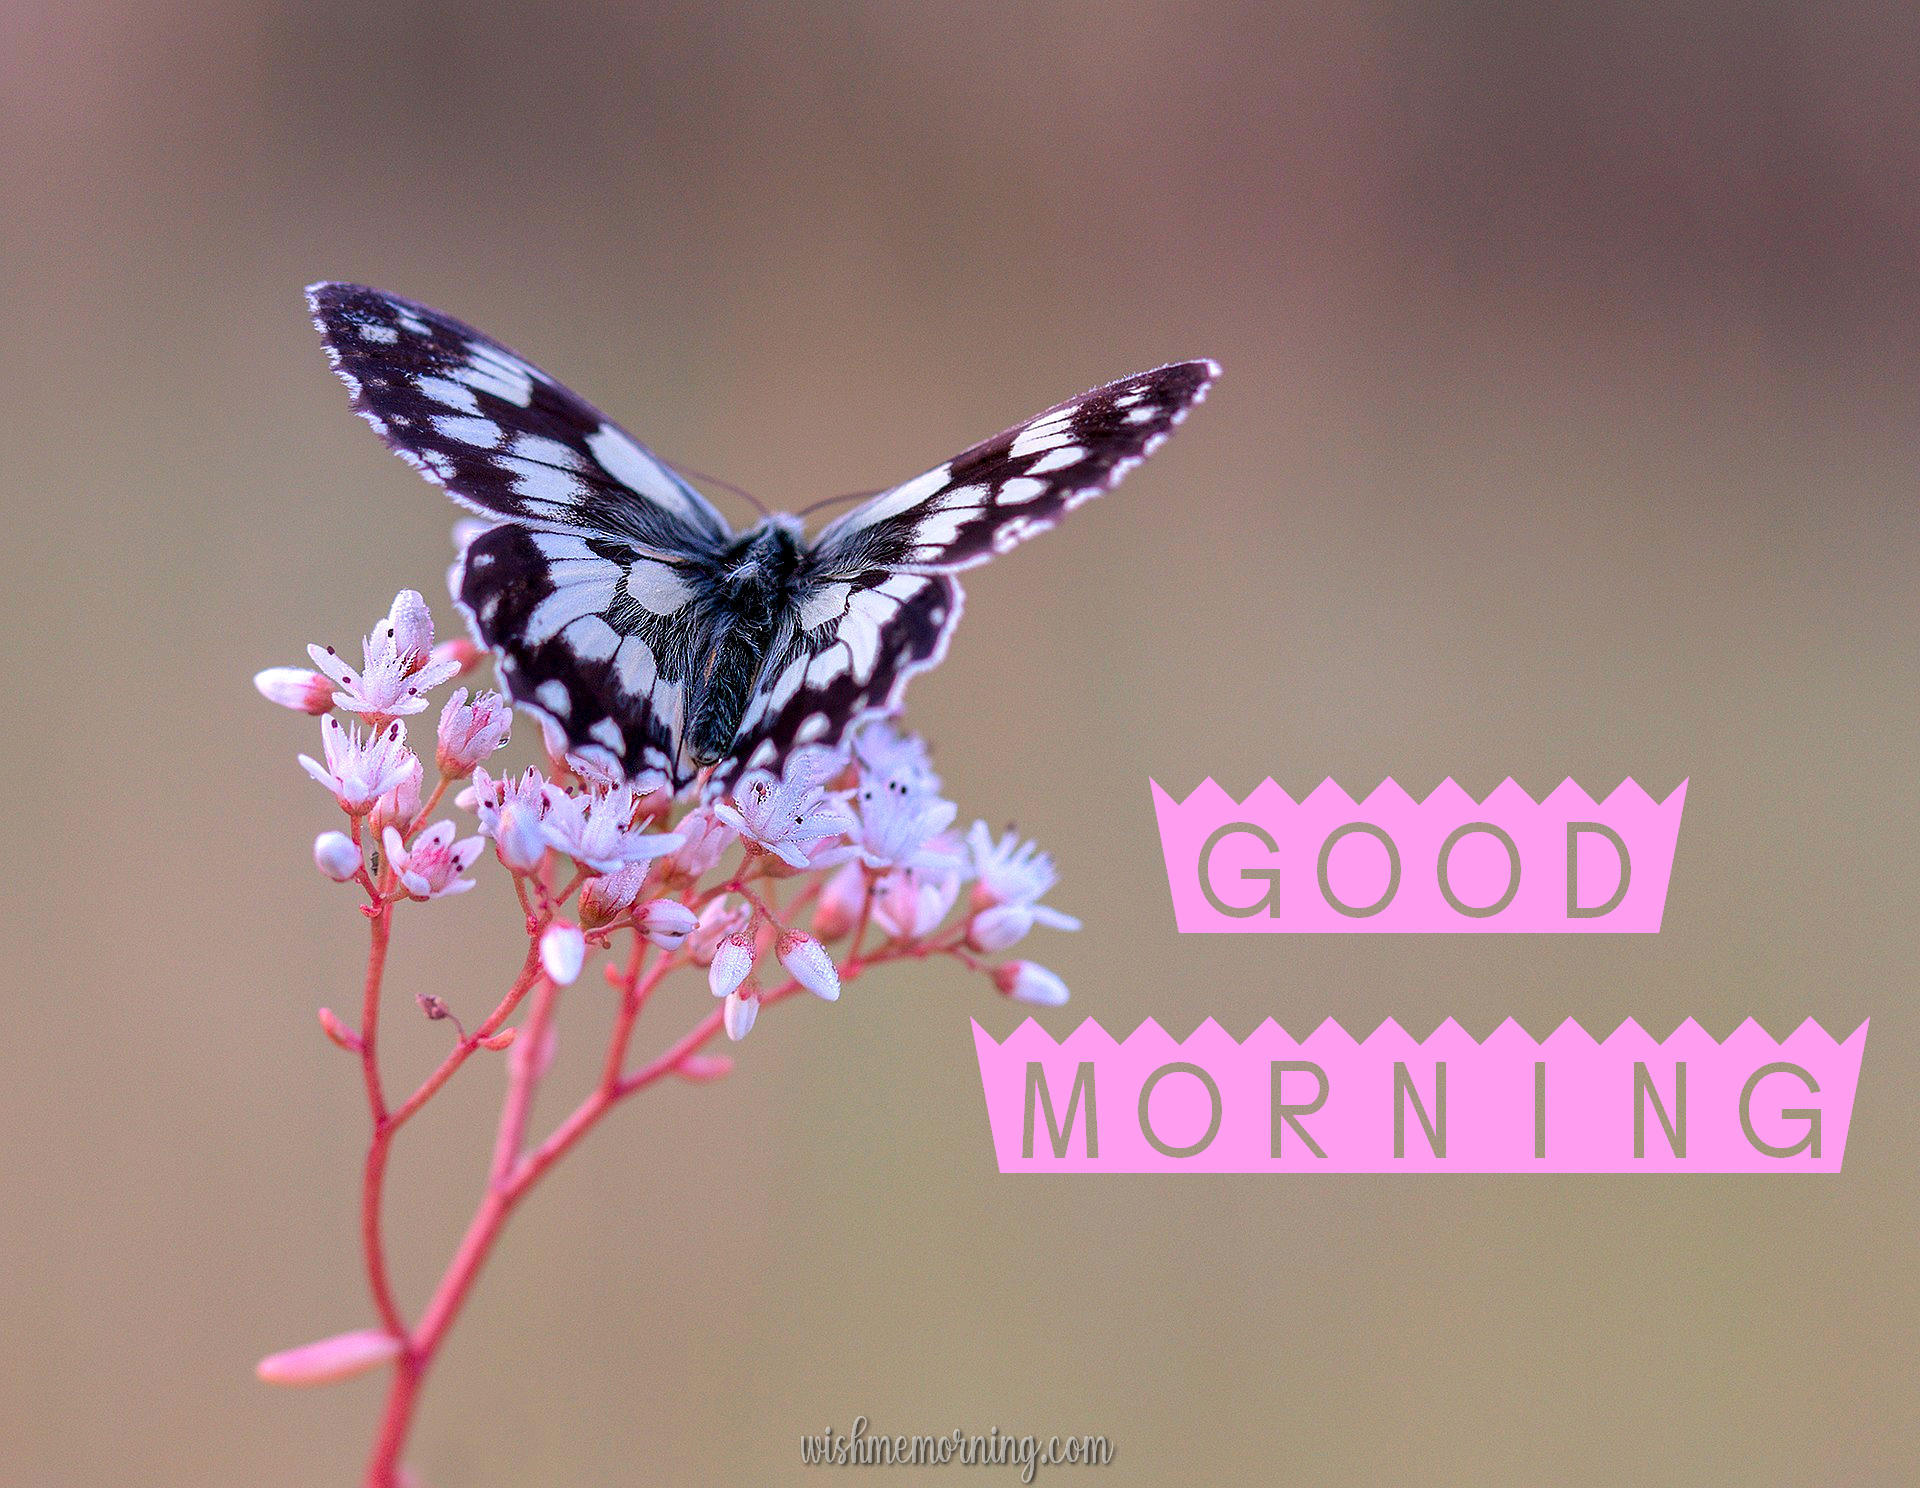 Beautiful Butterfly Good Morning Images wishmemorning.com 19